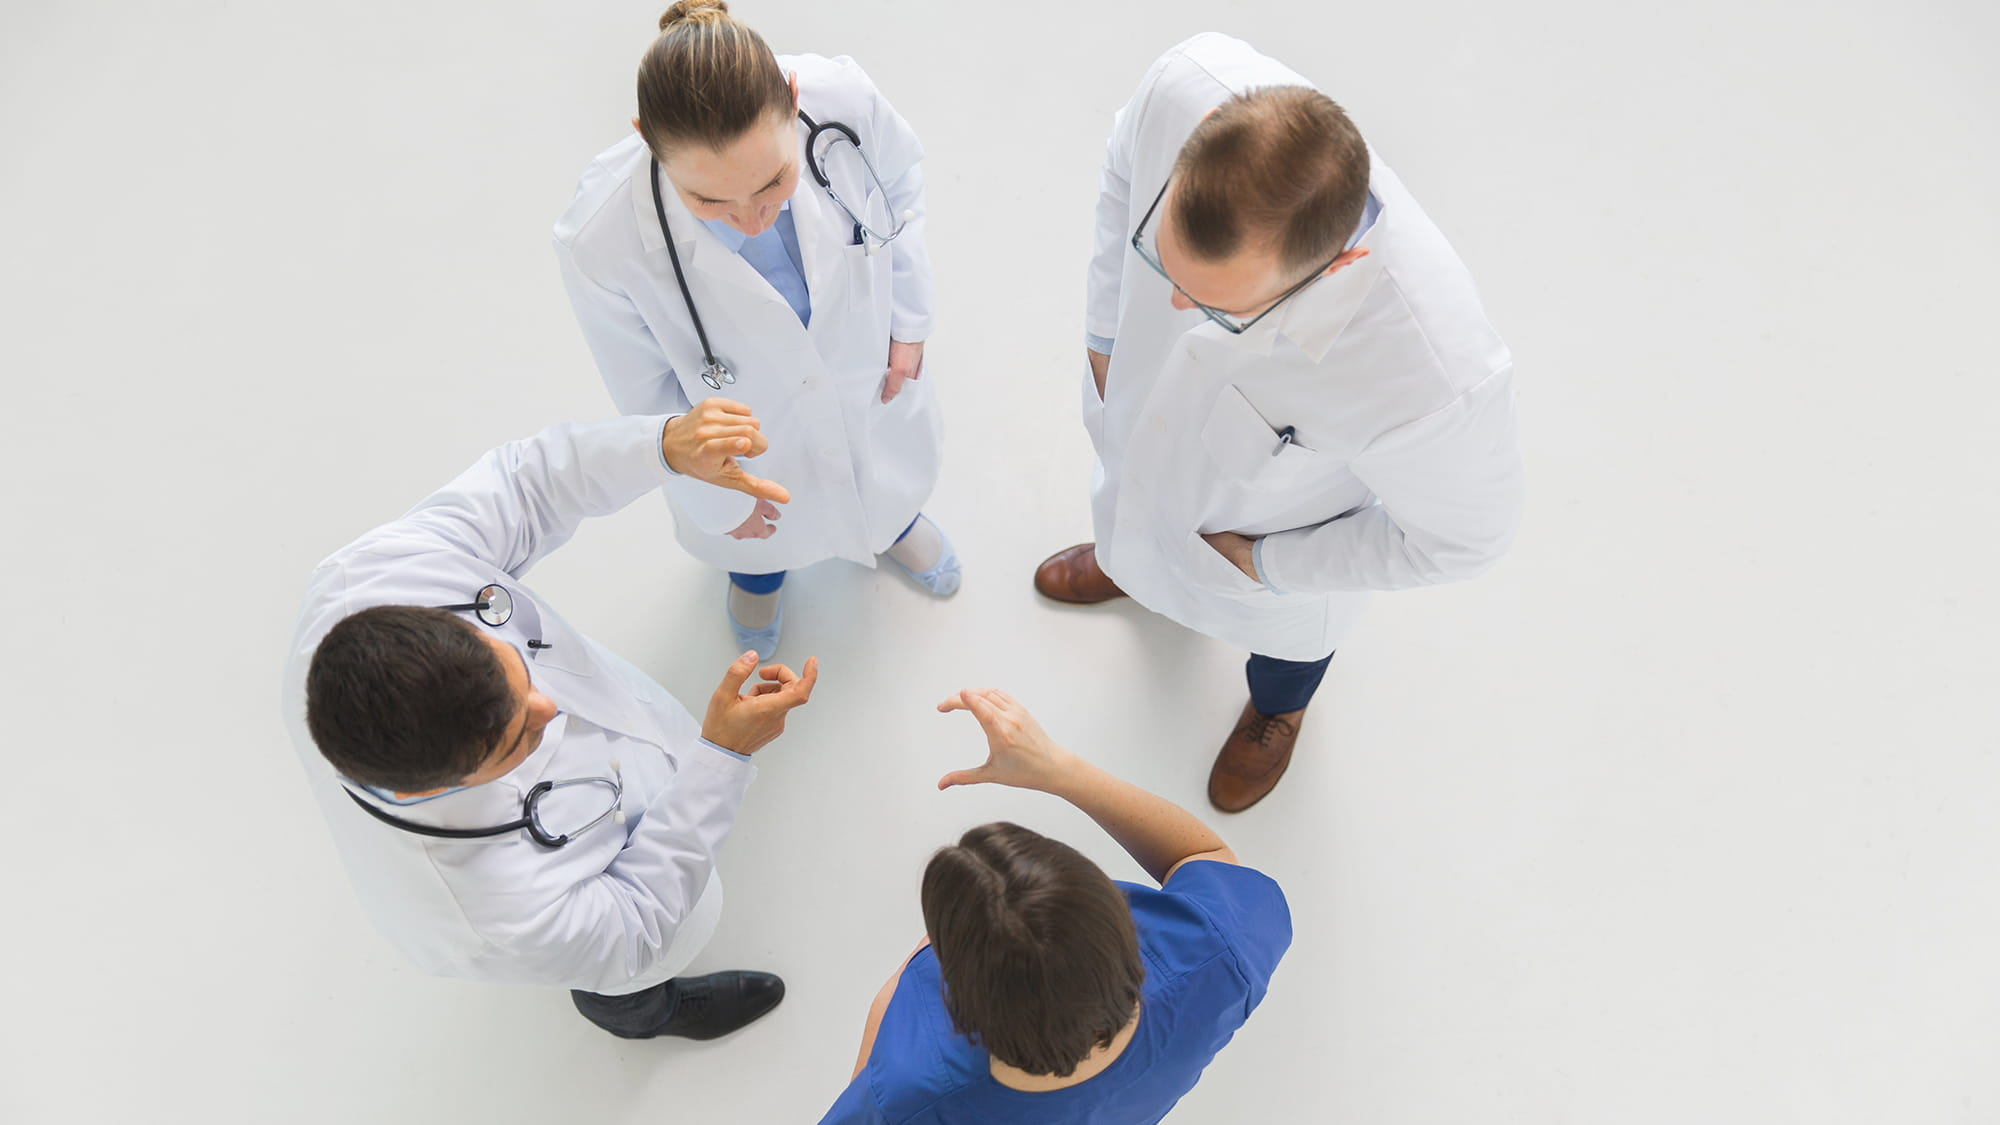 group of doctors discussing